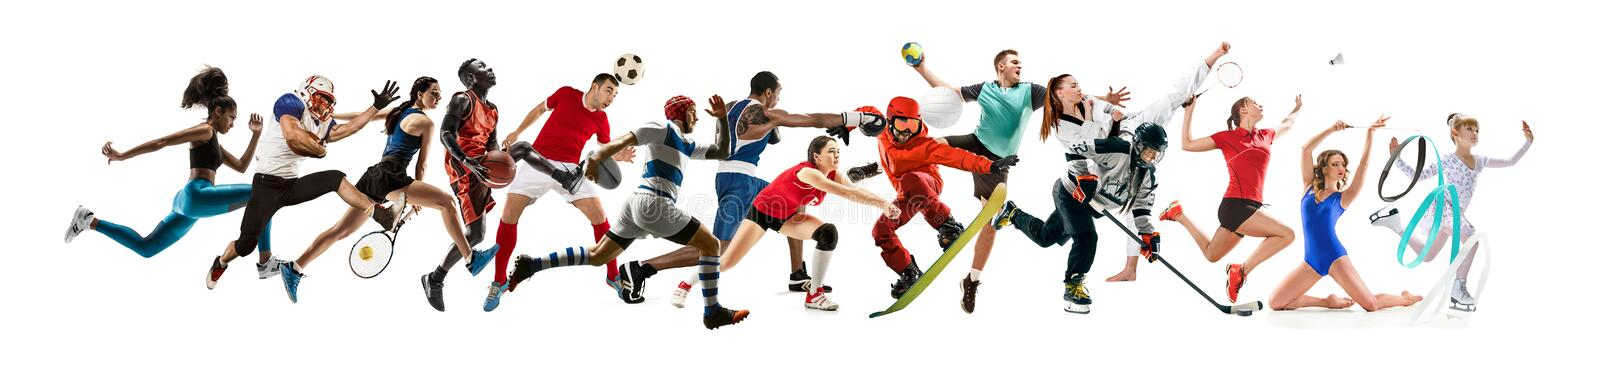 Creative collage of childrens and adults in sport. Creative collage of photos of 15 models running and jumping. Advertising, sport, healthy lifestyle, motion stock images